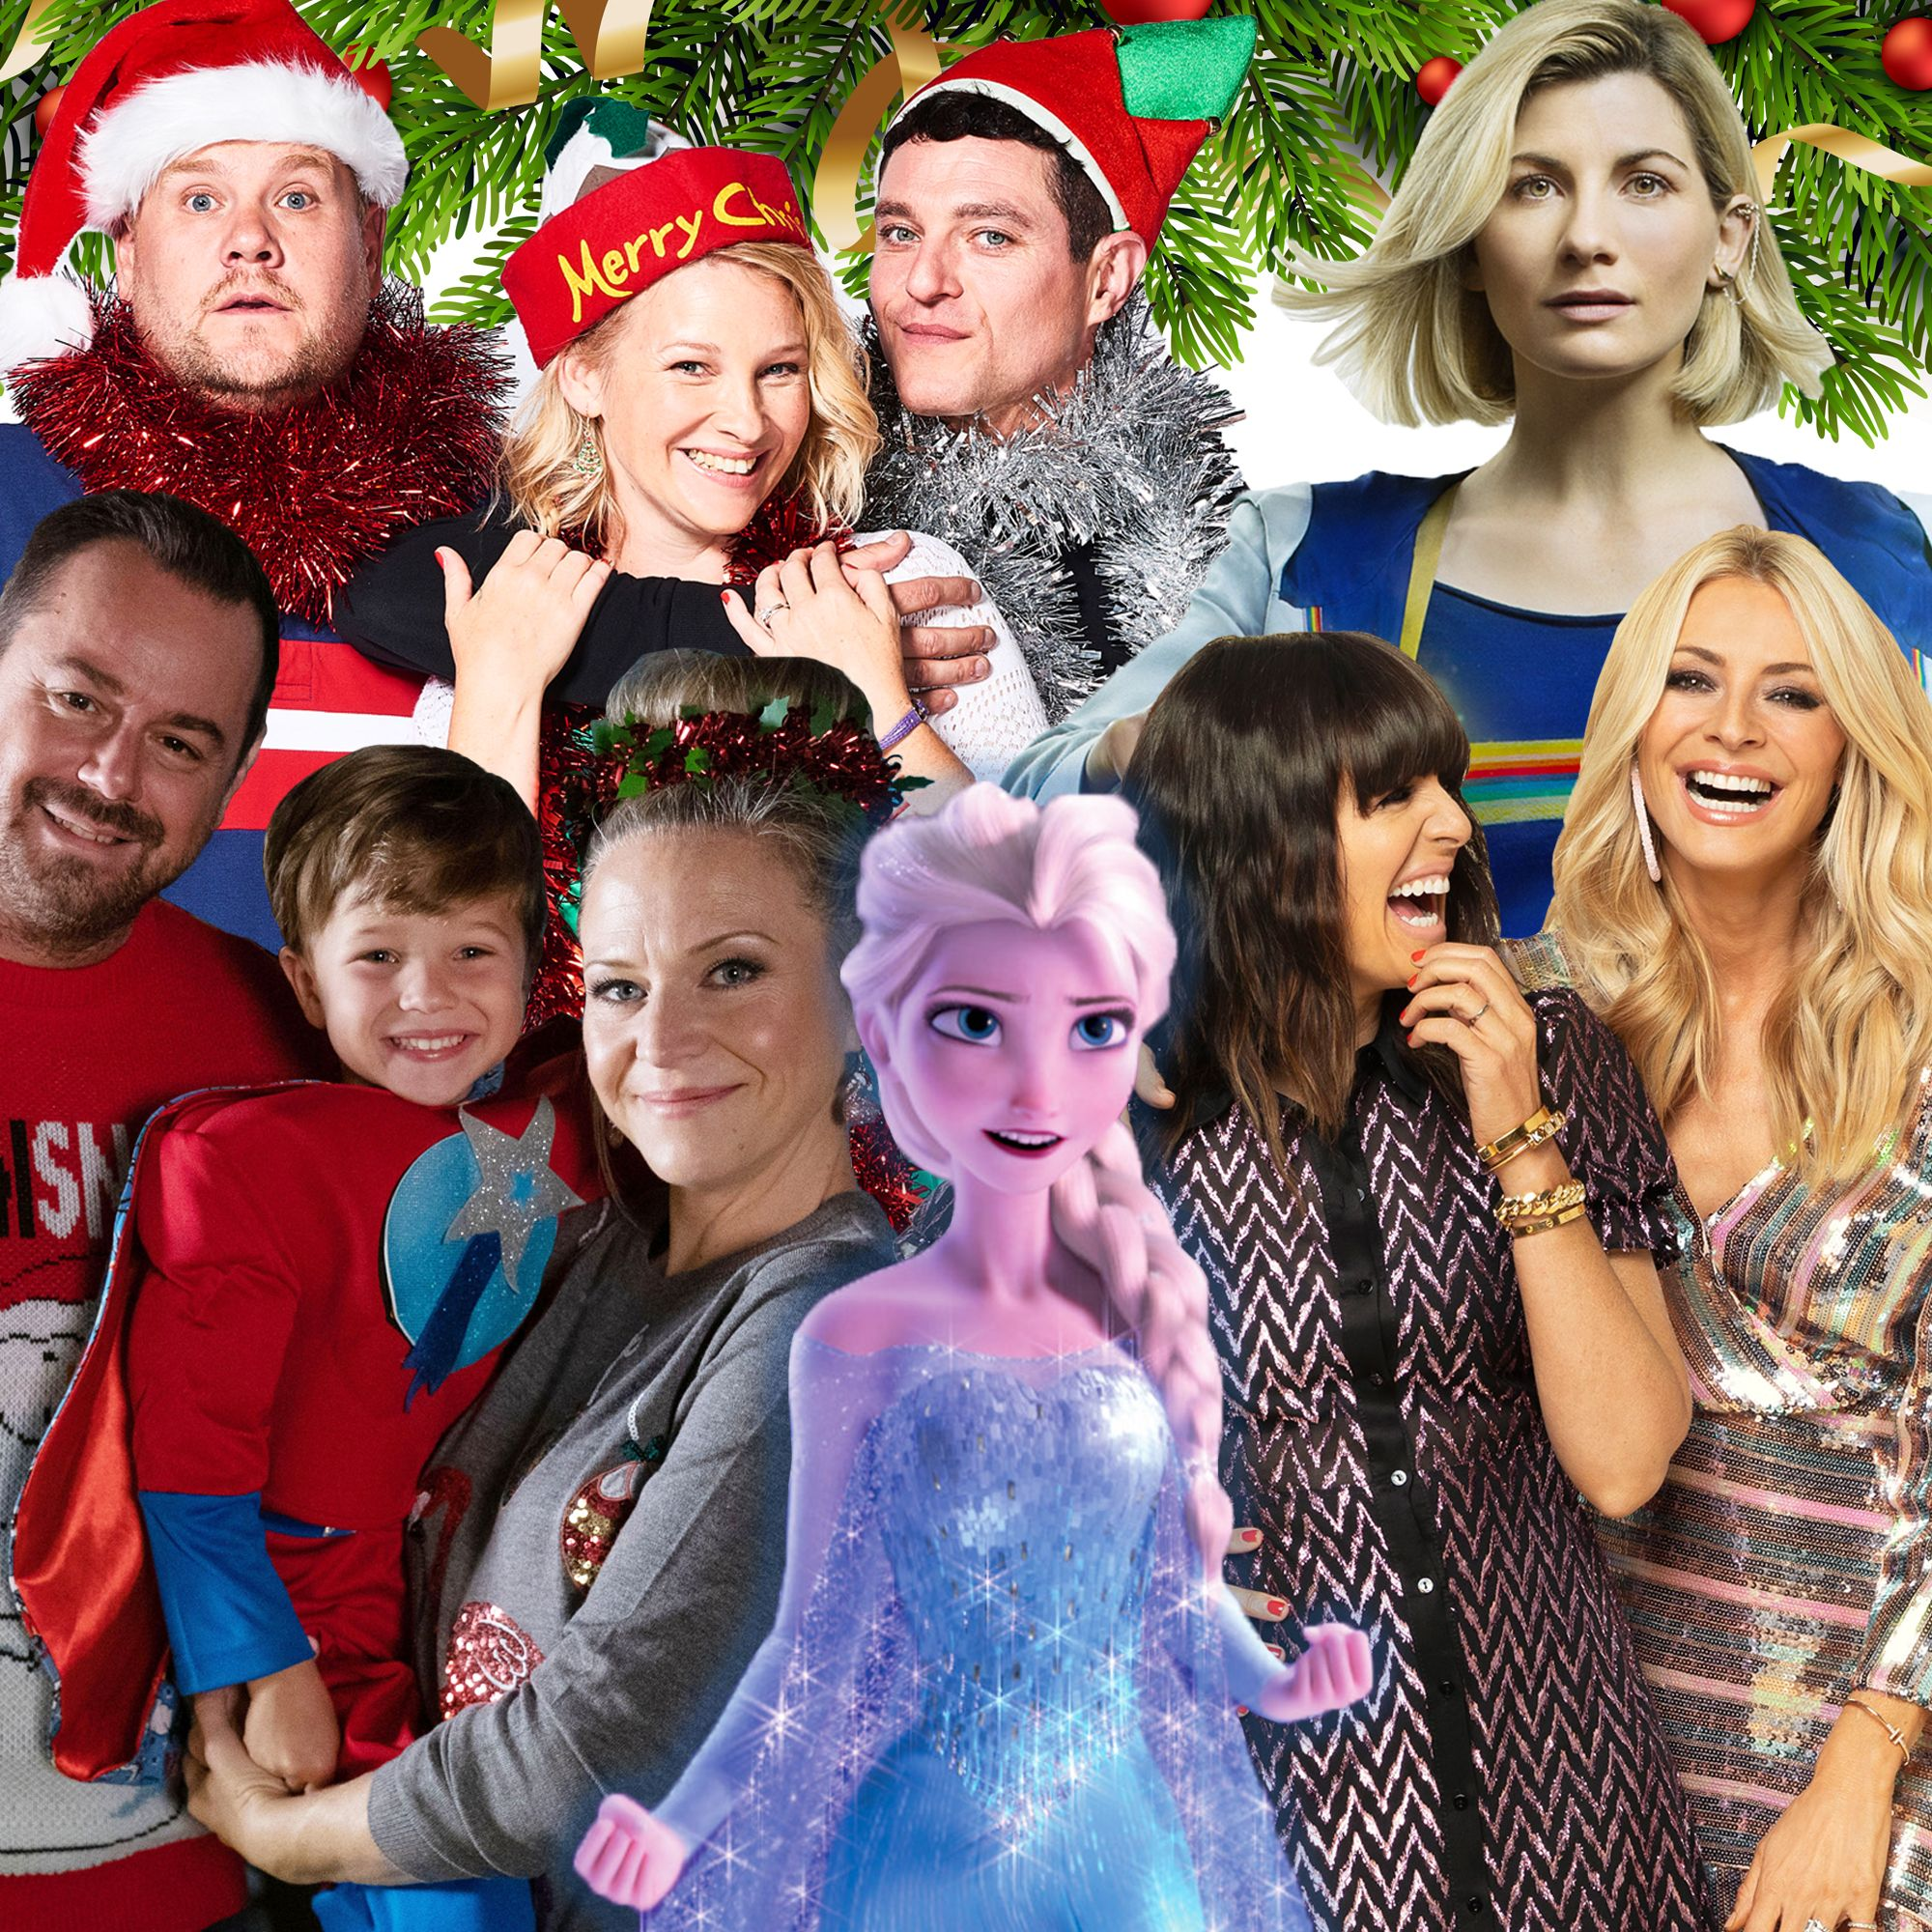 BBC Christmas TV guide 2019: All the listings and highlights